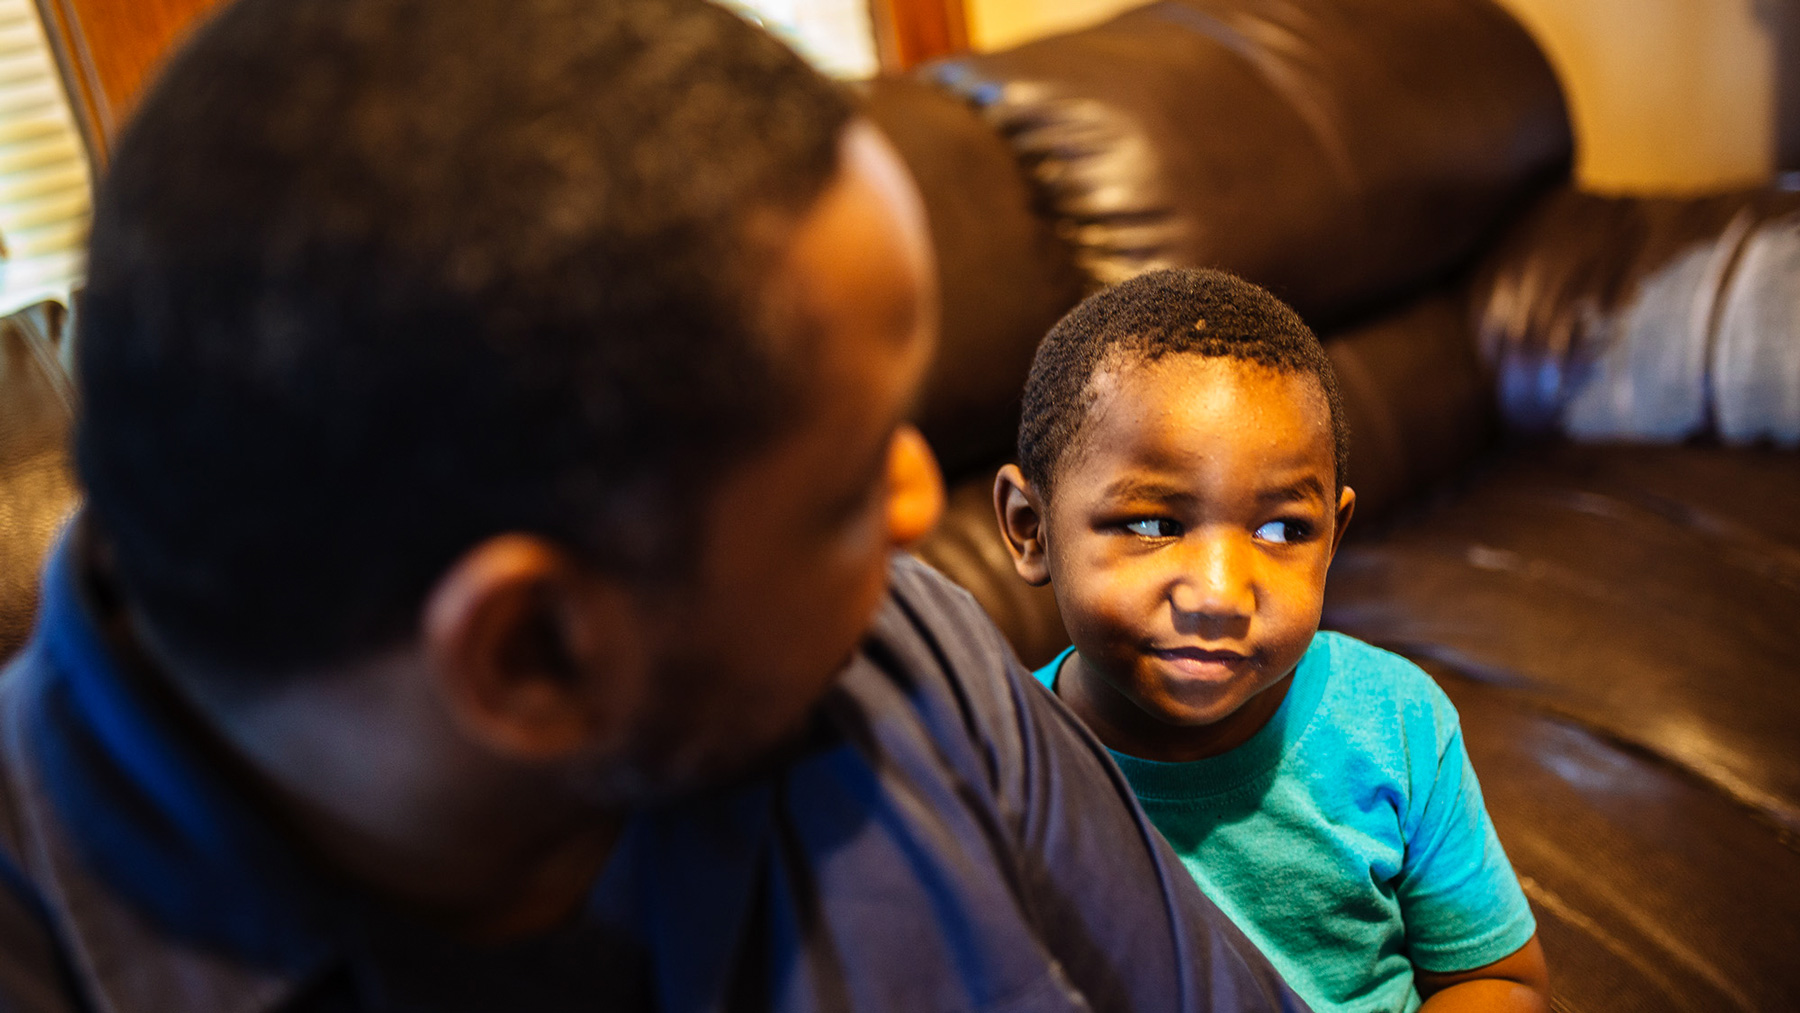 Tory Lowe and his 4-year-old son, Troy, sit in their Milwaukee home. In December, Tory learned that his son had lead poisoning. (Michael M. Santiago/News21)